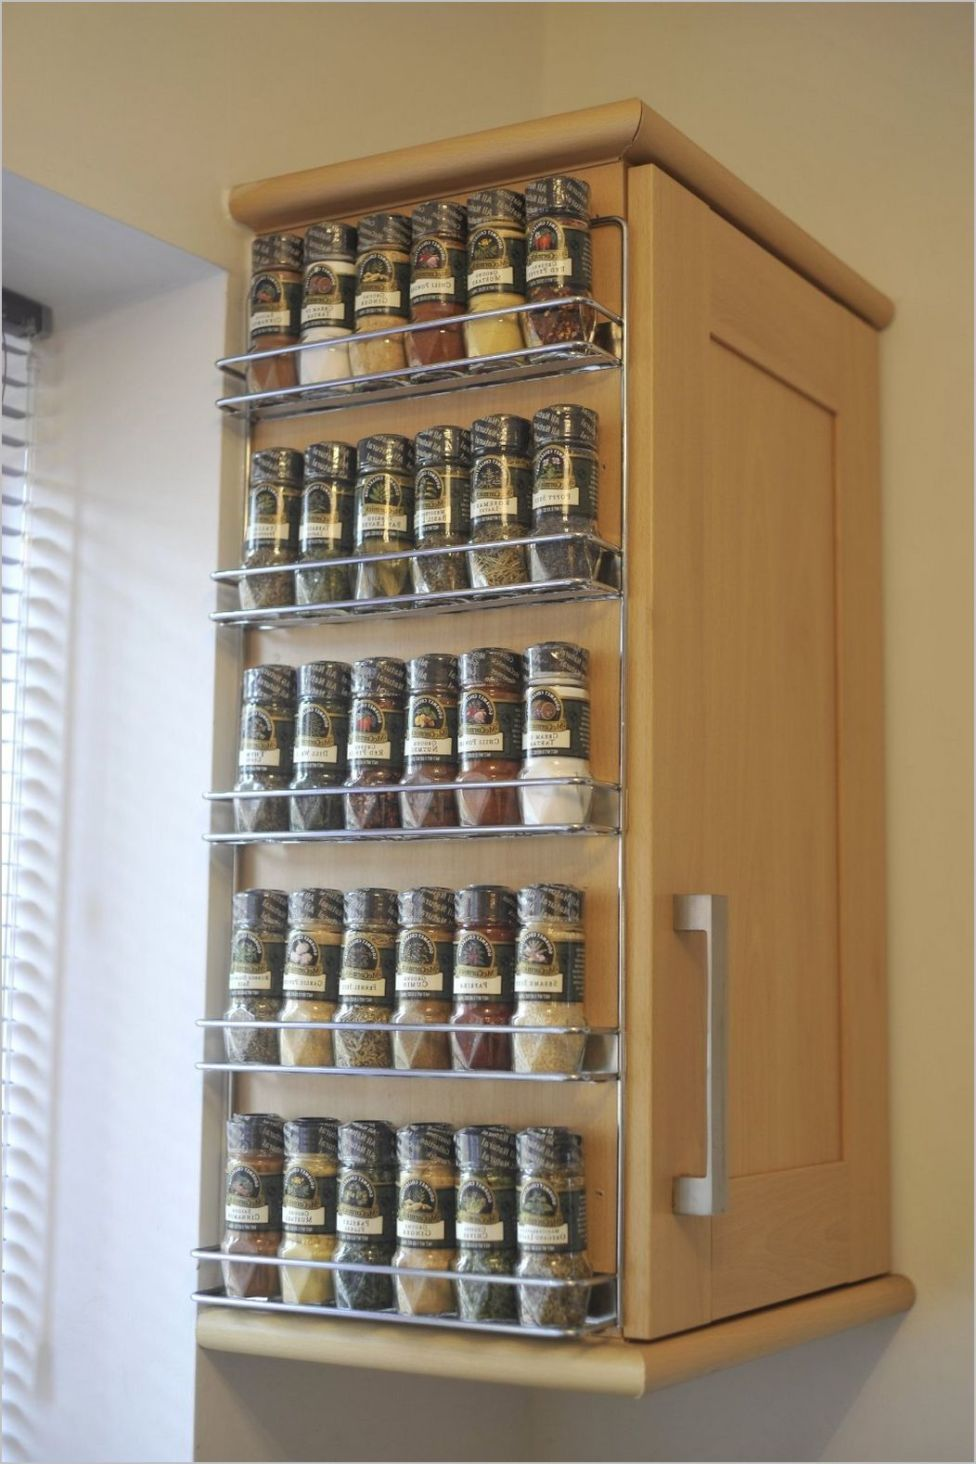 Image result for spice storage ideas & Image result for spice storage ideas | KITCHEN IDEAS | Pinterest ...